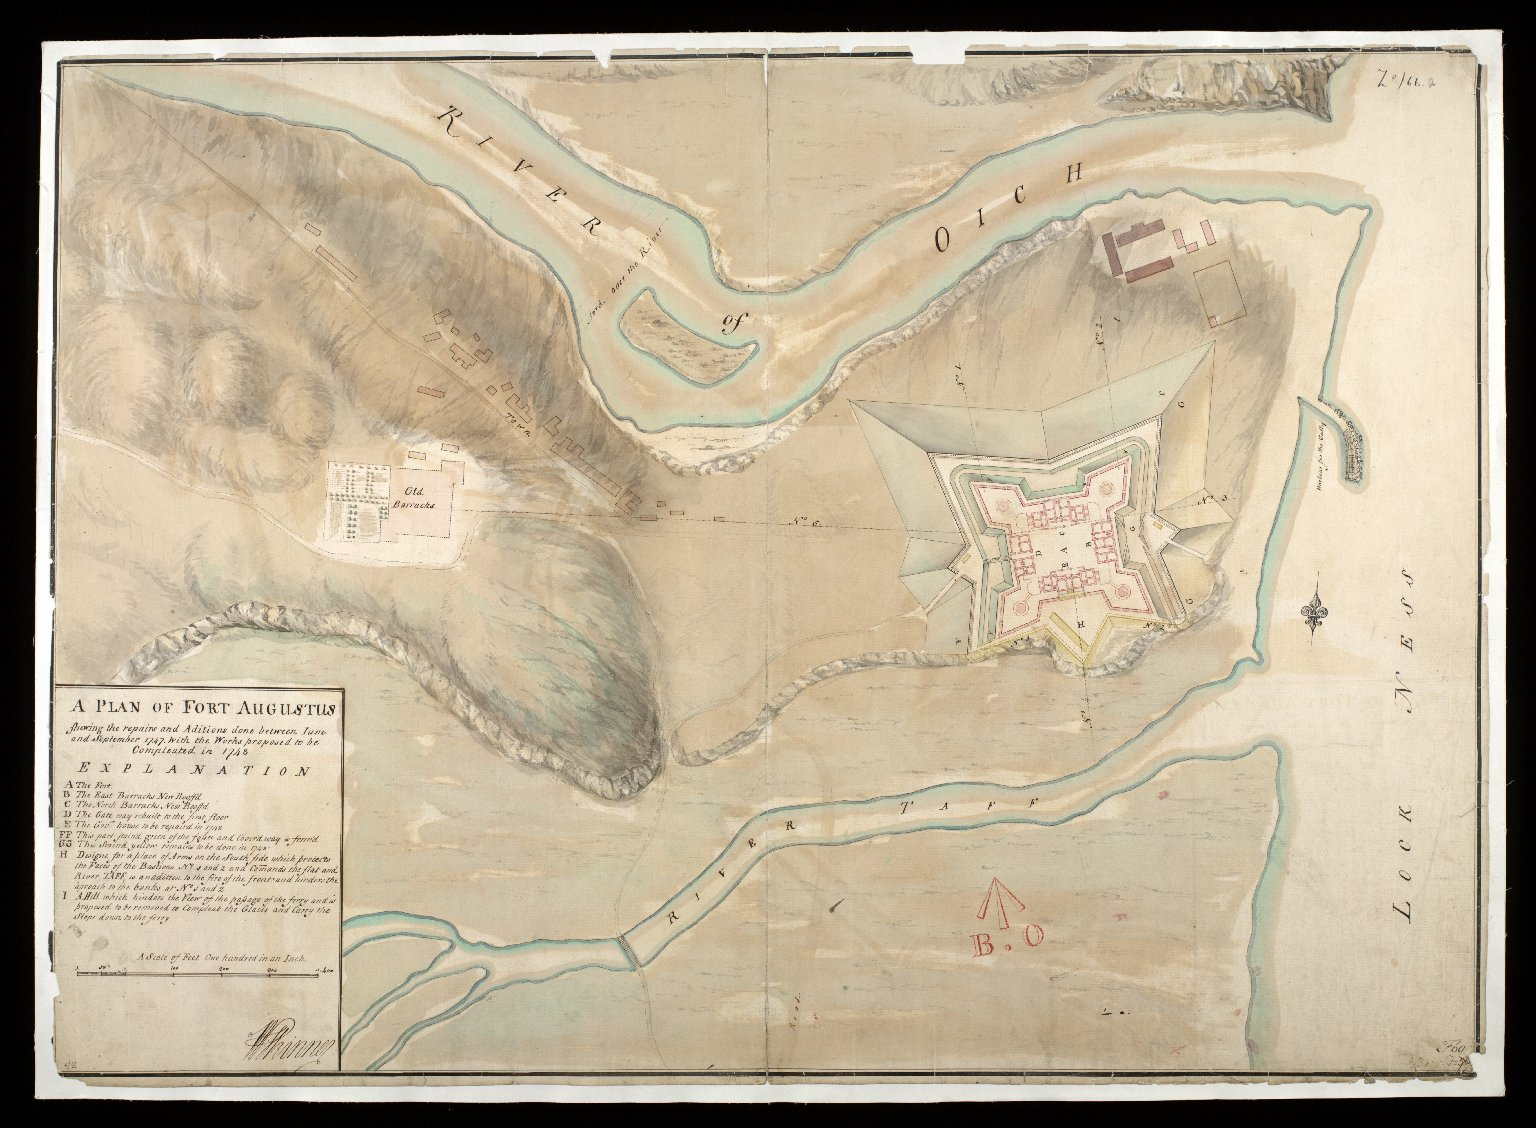 A Plan of Fort Augustus : shewing the repairs and aditions done between Iune and September 1747, with the works proposed to be compleated in 1748 [1 of 1]